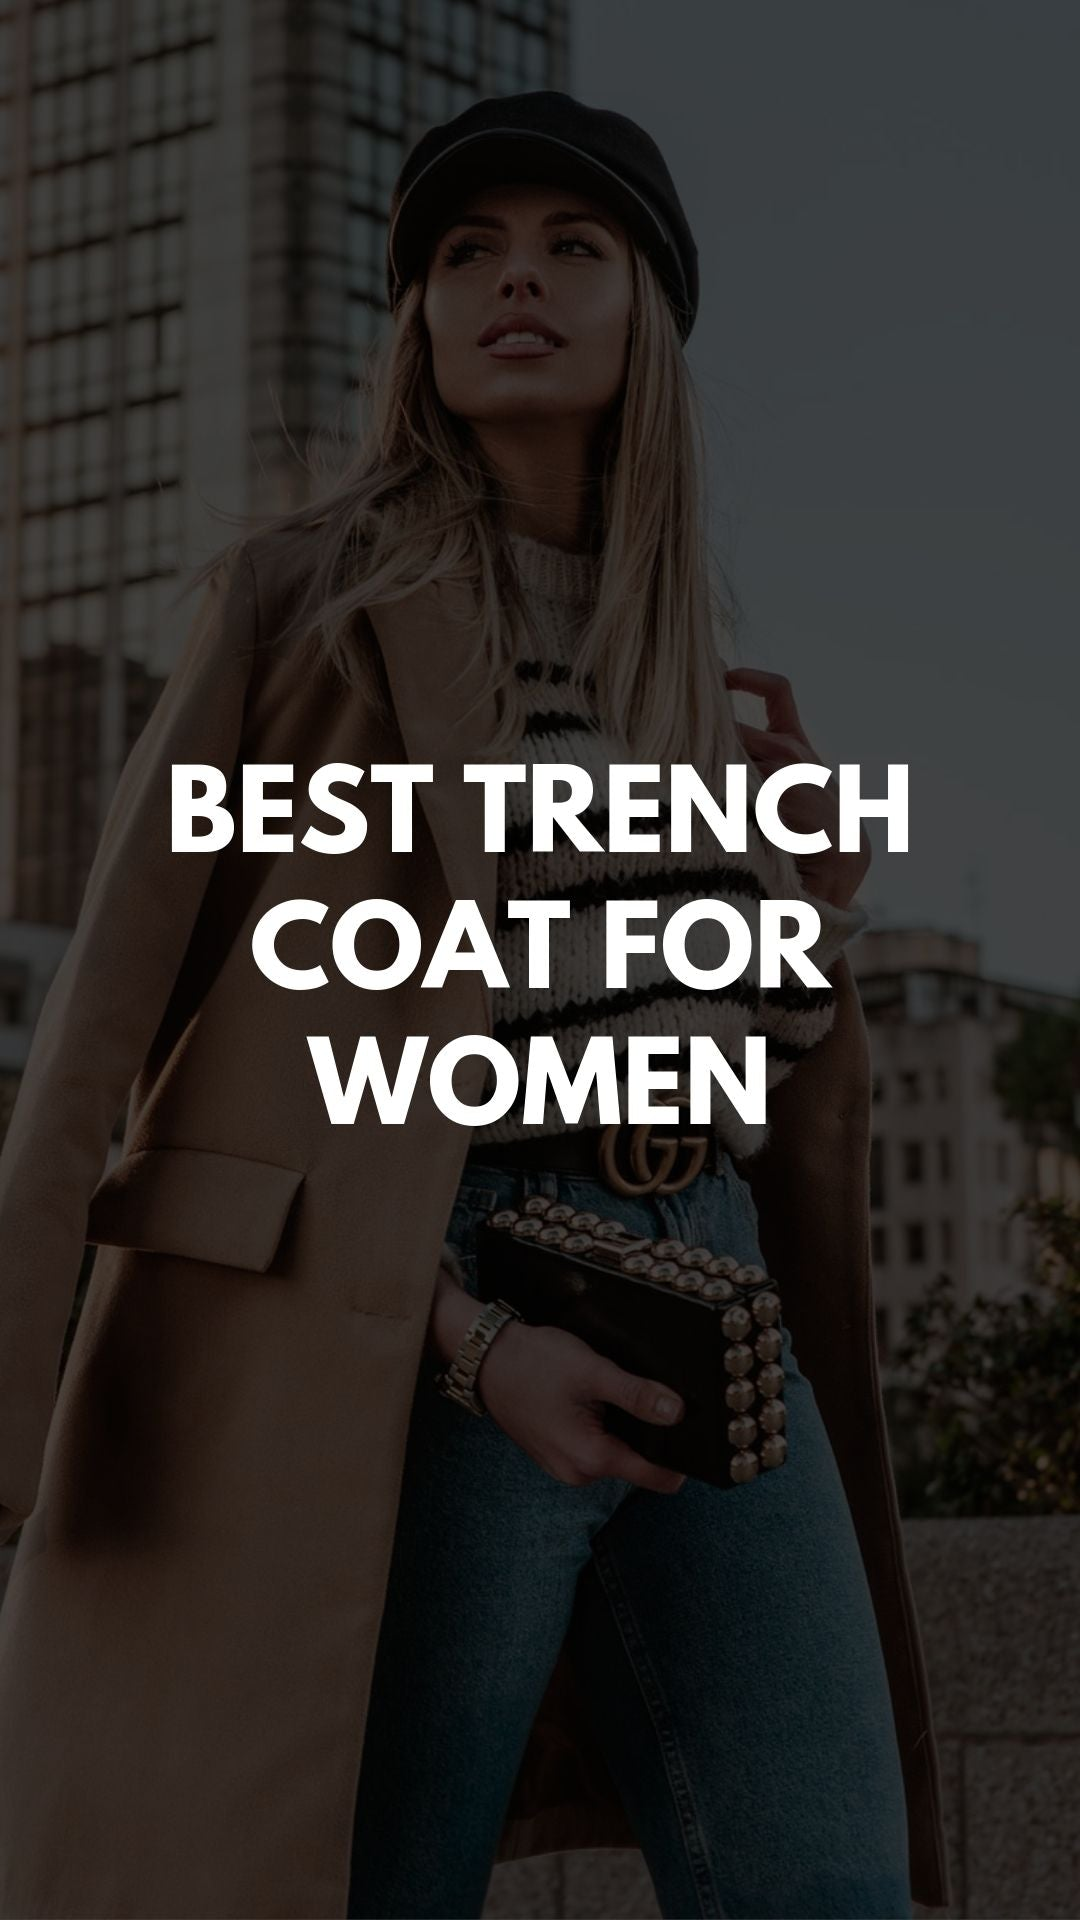 Best Trench Coat for Women